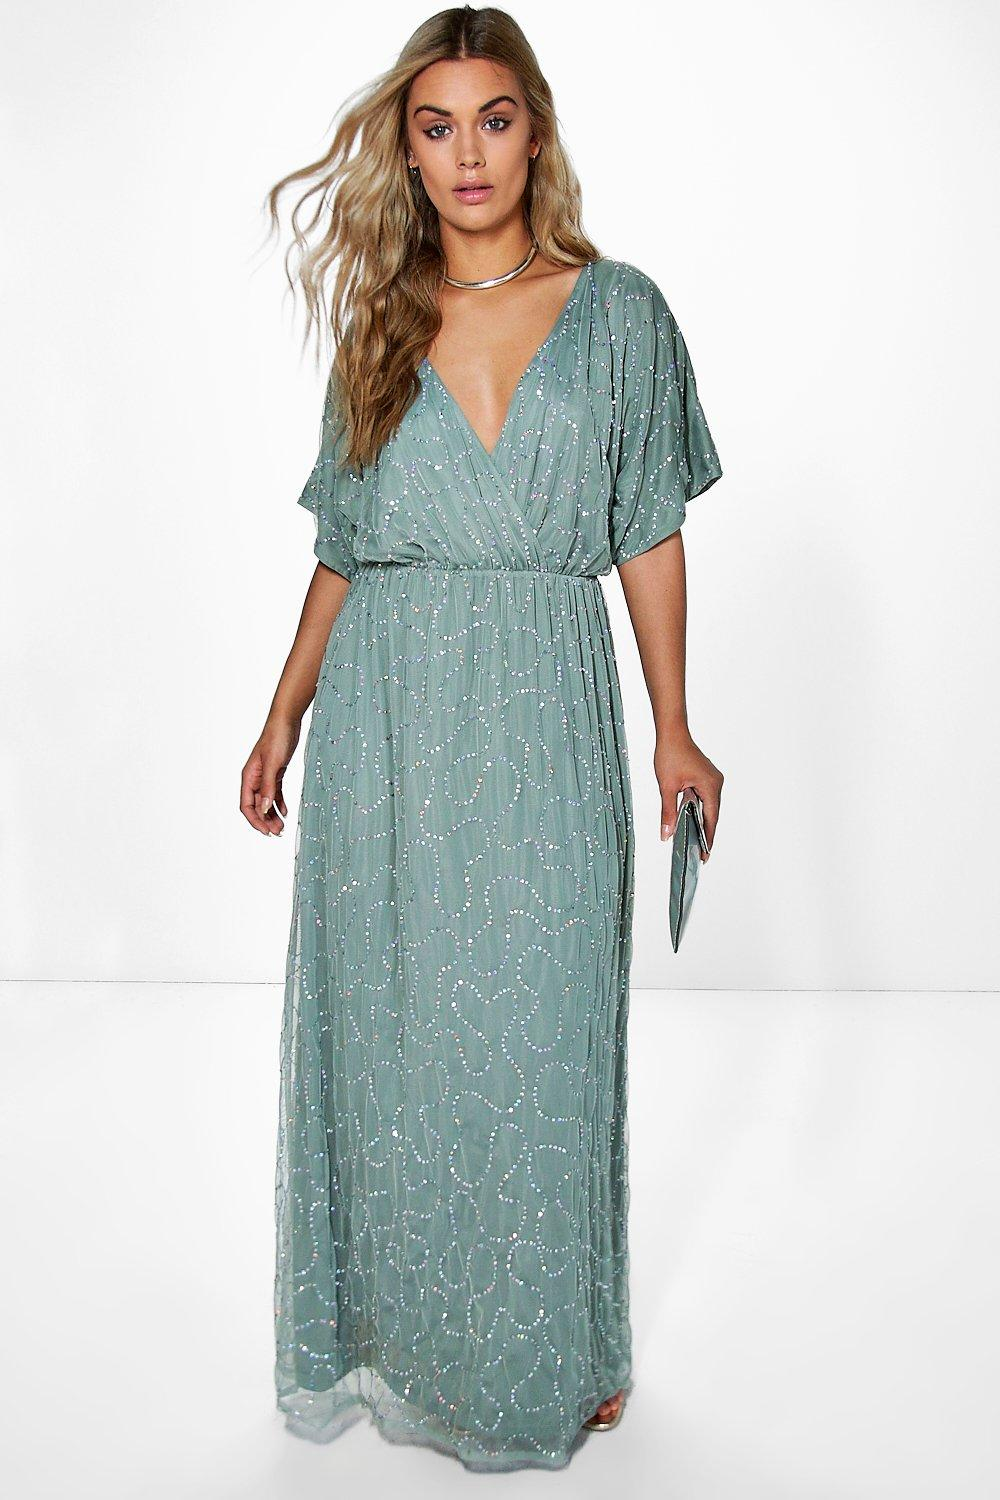 Boohoo Plus Off The Shoulder Jersey Maxi Dress Low Shipping For Sale Buy Cheap Perfect Prices Fast Delivery Sale Online Free Shipping Genuine f9ataI0